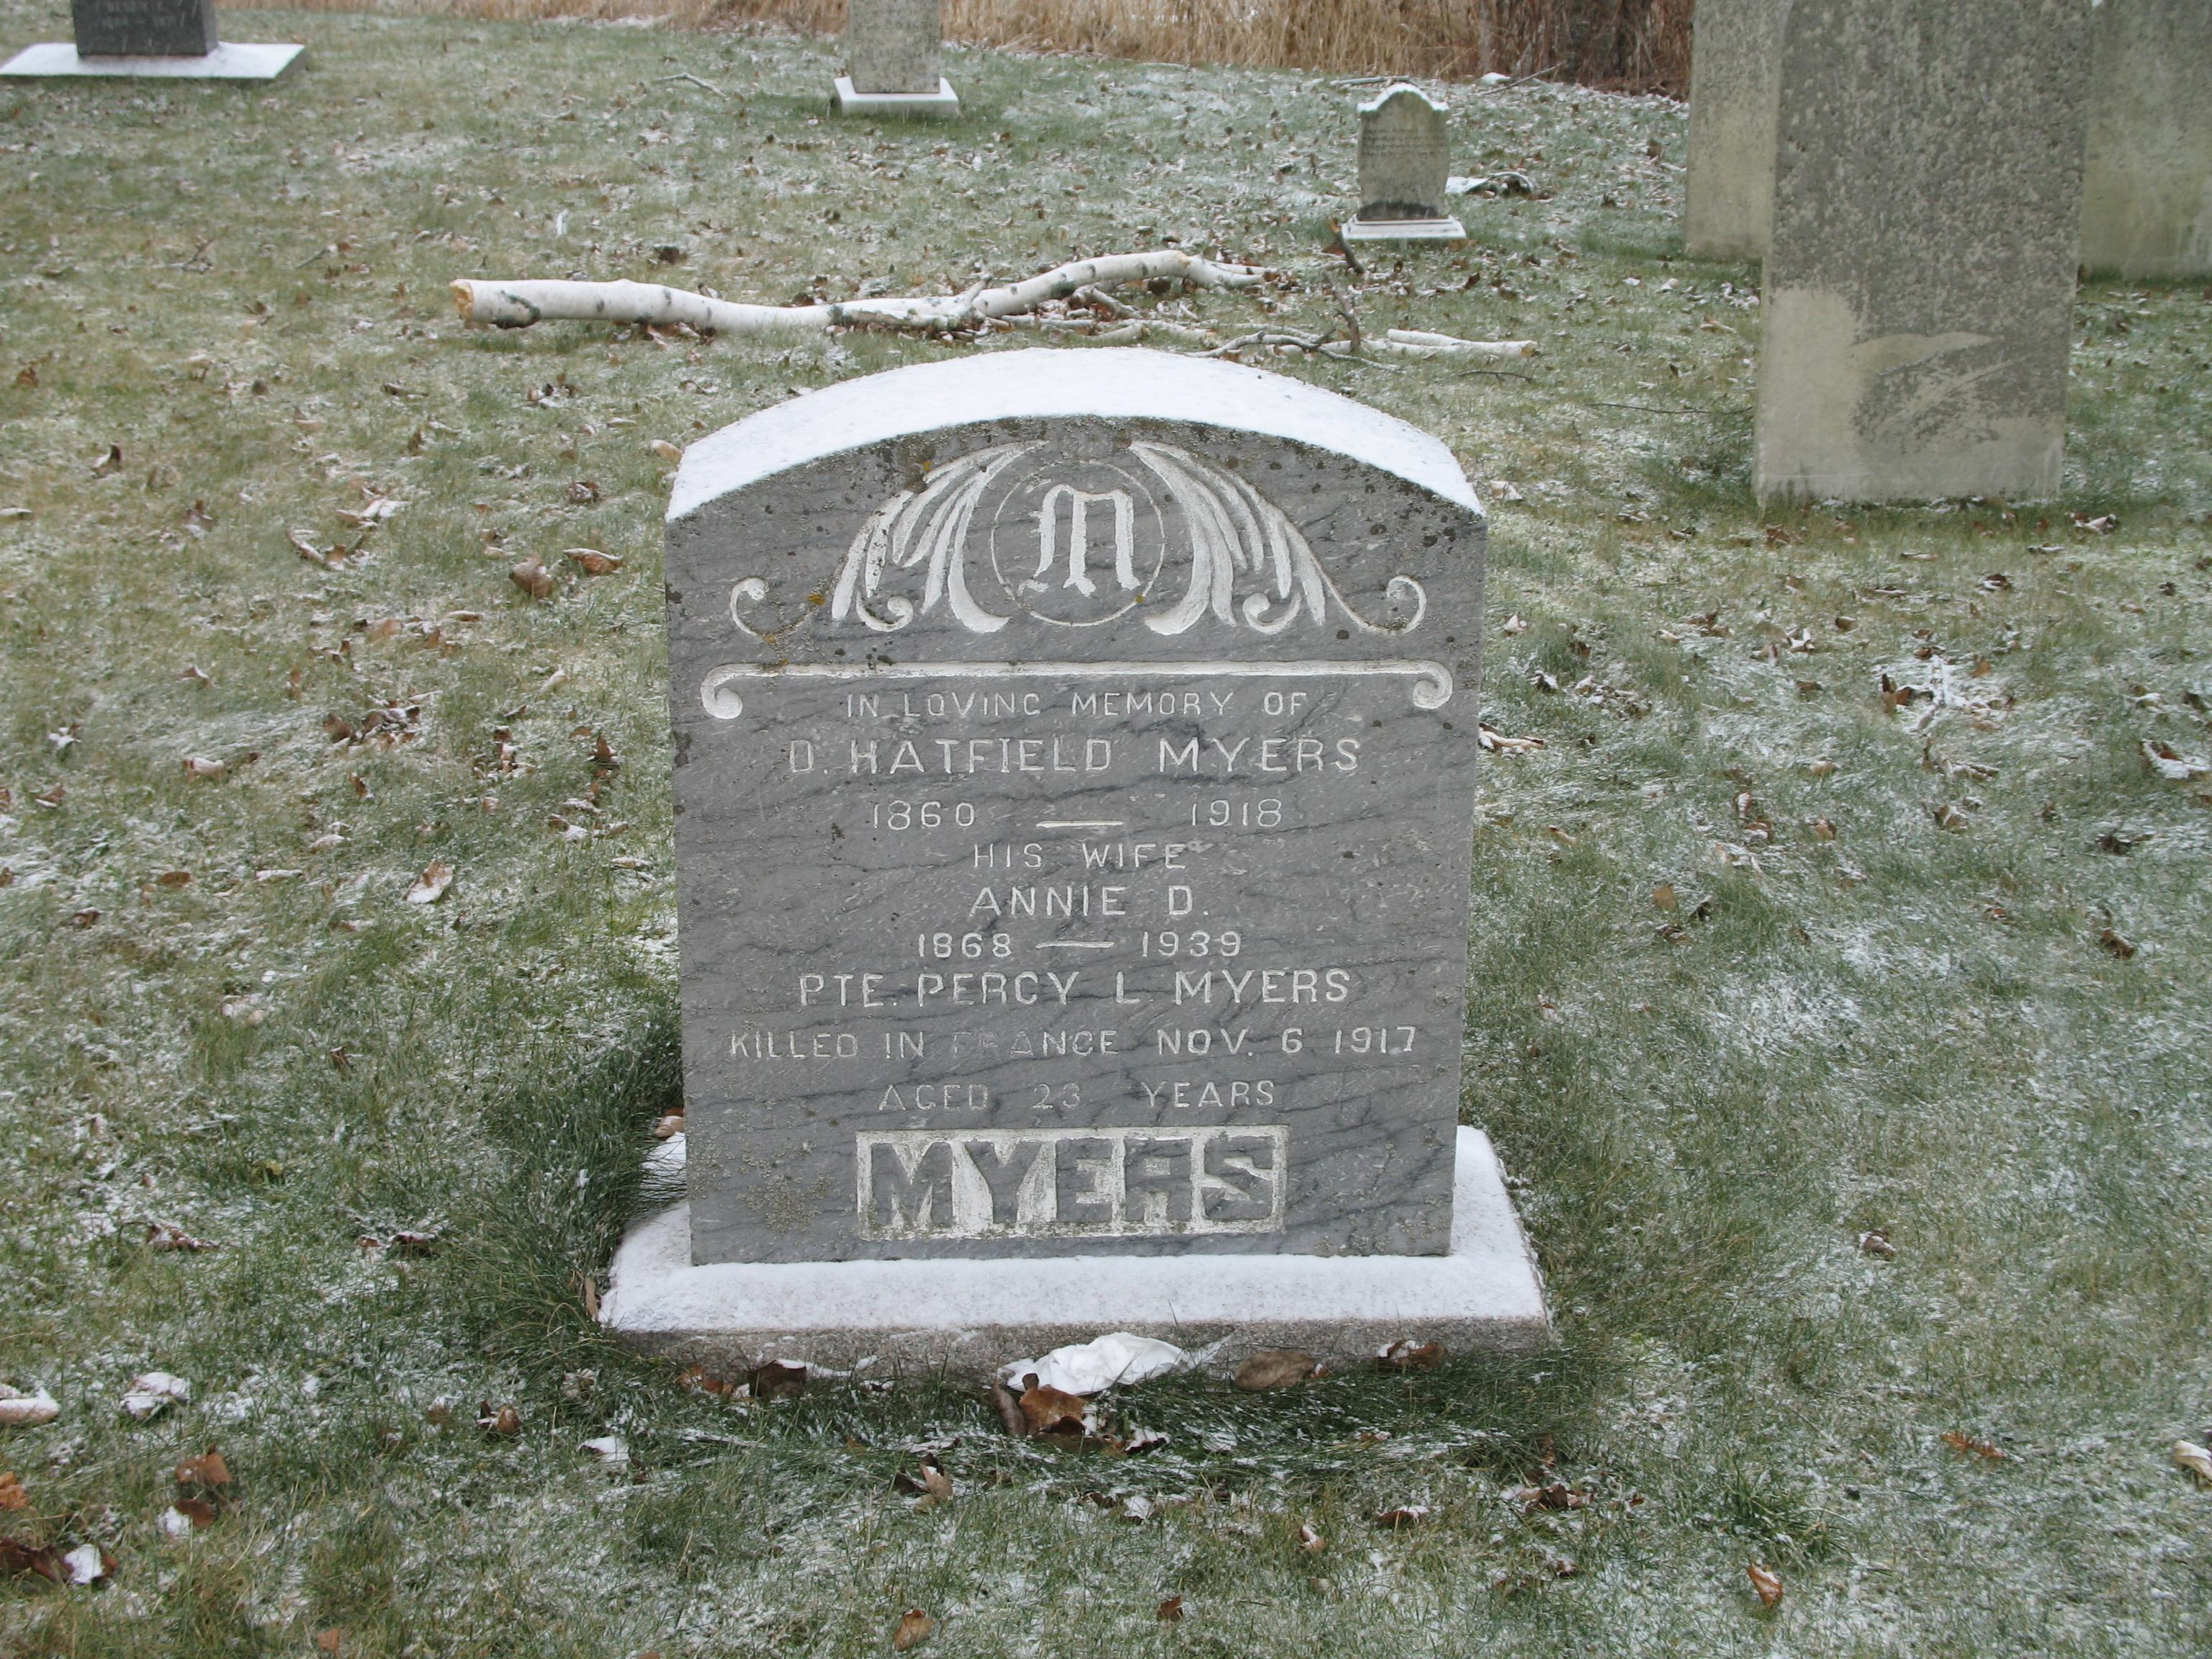 Family Memorial– Grave site for Percy l. Myers (with parents), Anglican Church, Bloomfield, Kings County, New Brunswick.